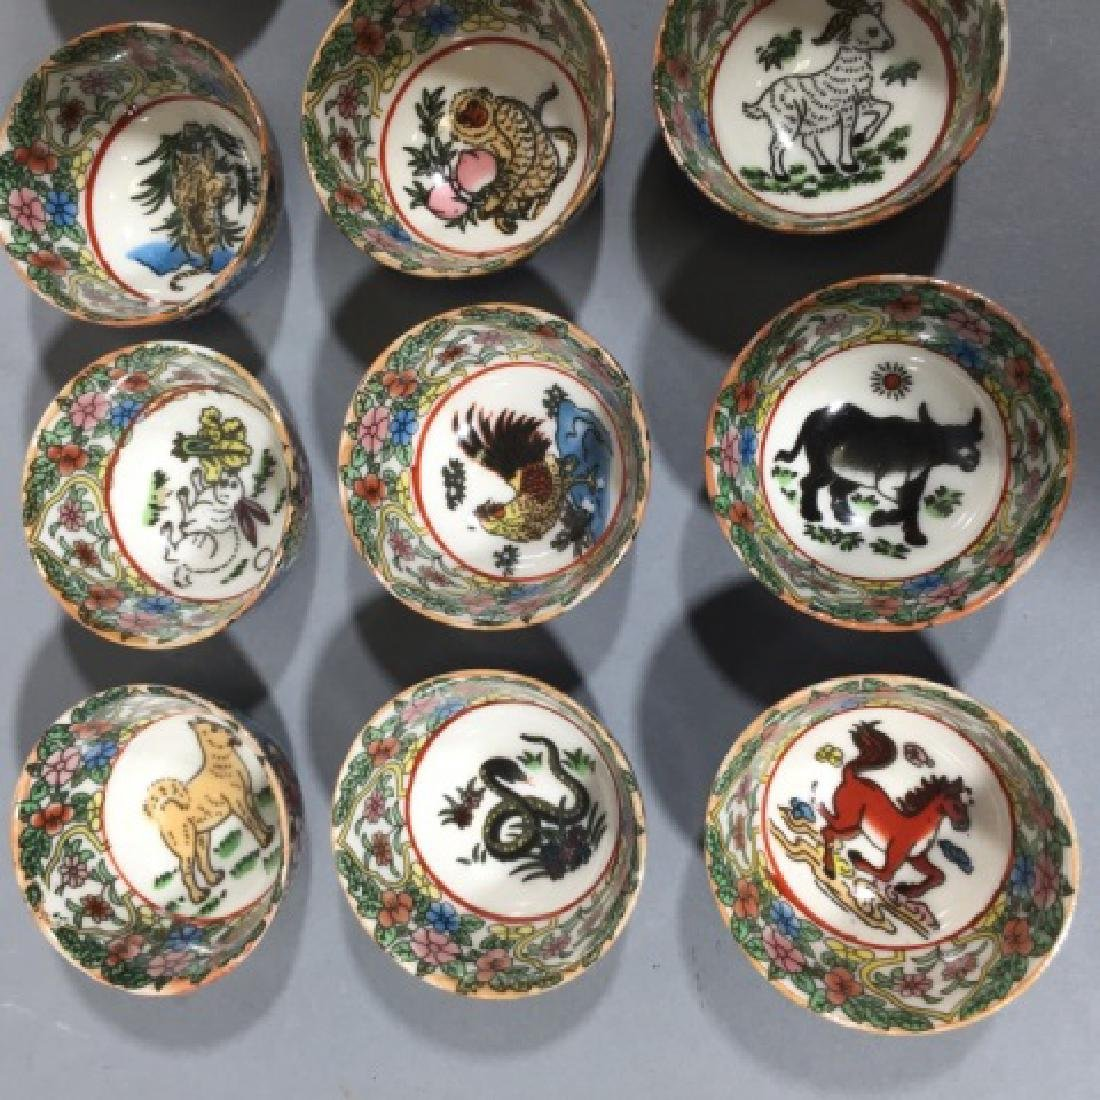 Set of 12 Chinese Porcelain Zodiac Tea Cups - 3